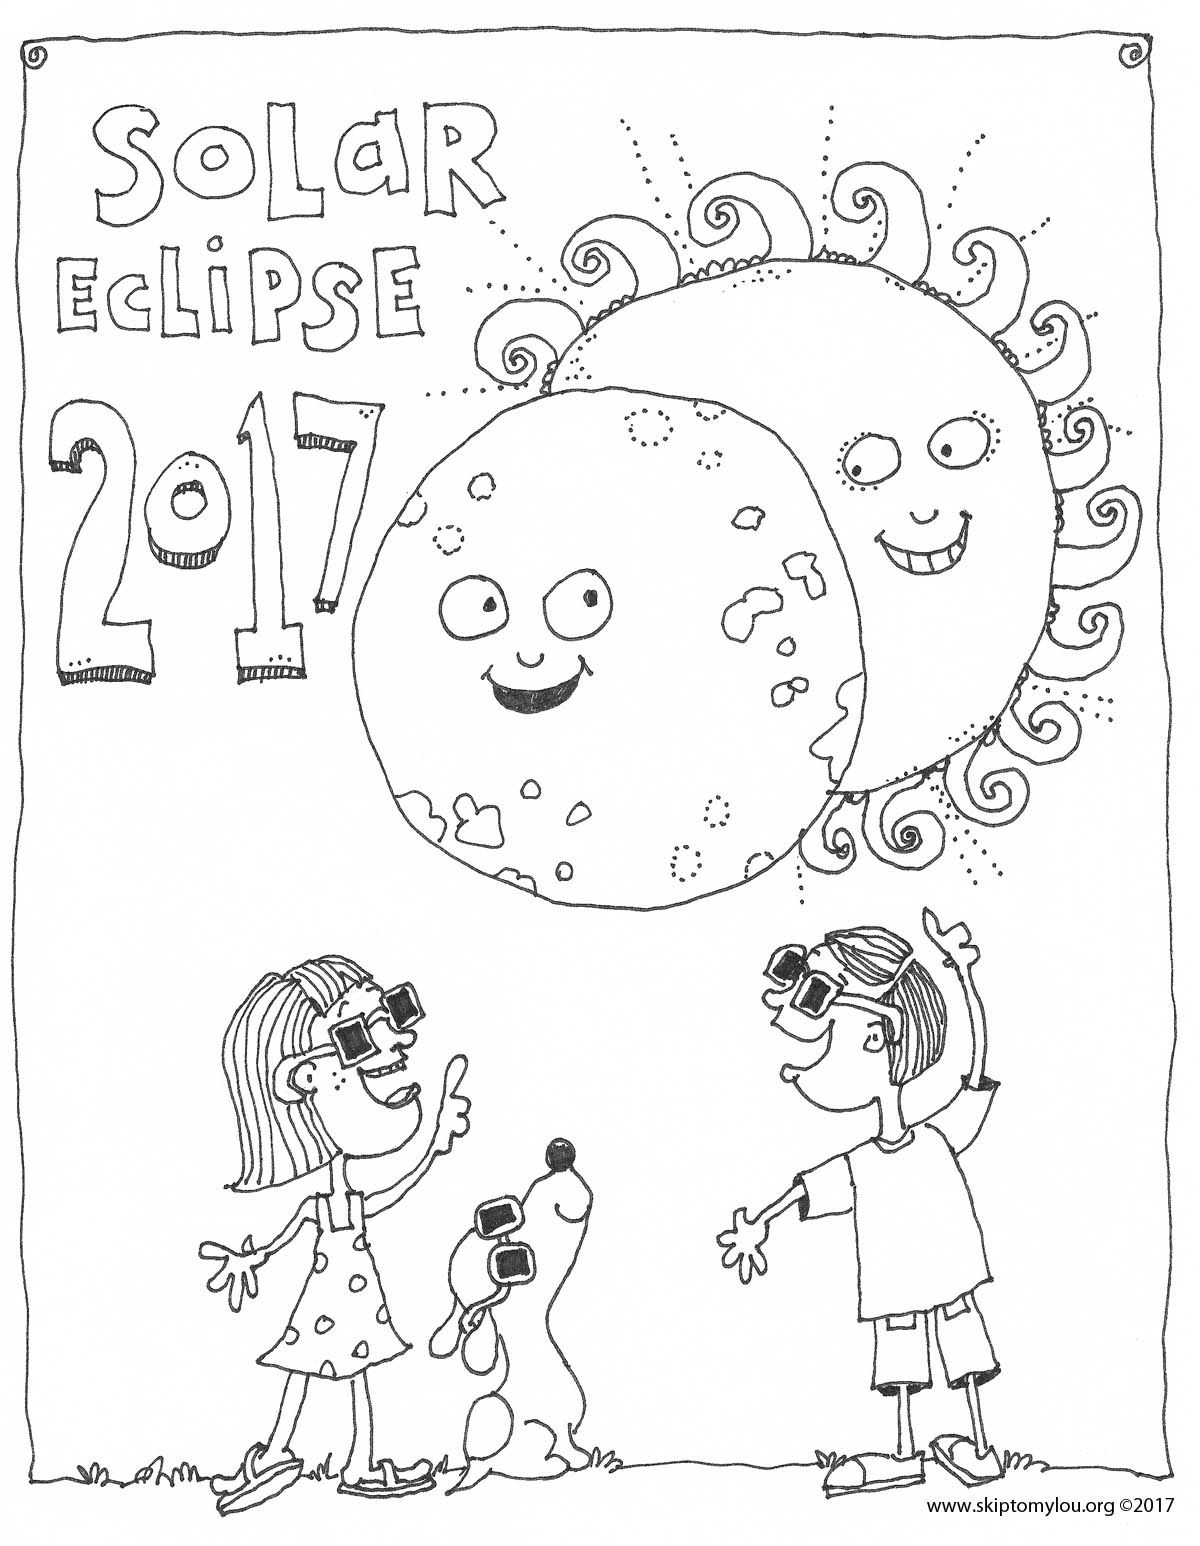 free printable coloring page and memory keeper for the solar